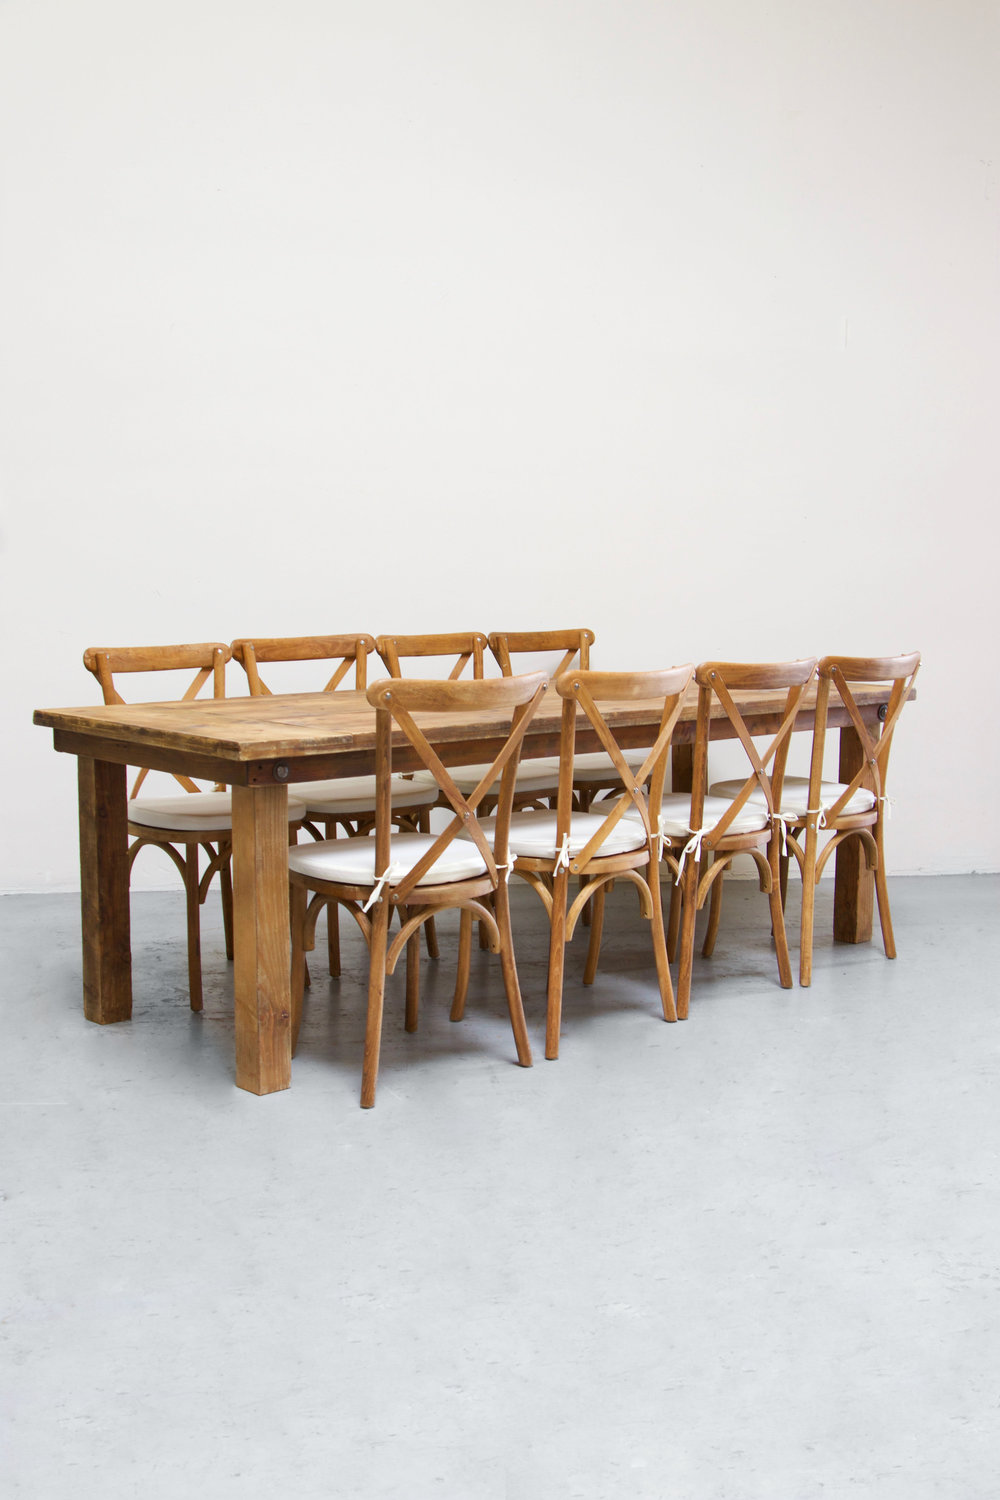 $145 1 Honey Brown Farm Table w/ 8 Cross-Back Chairs